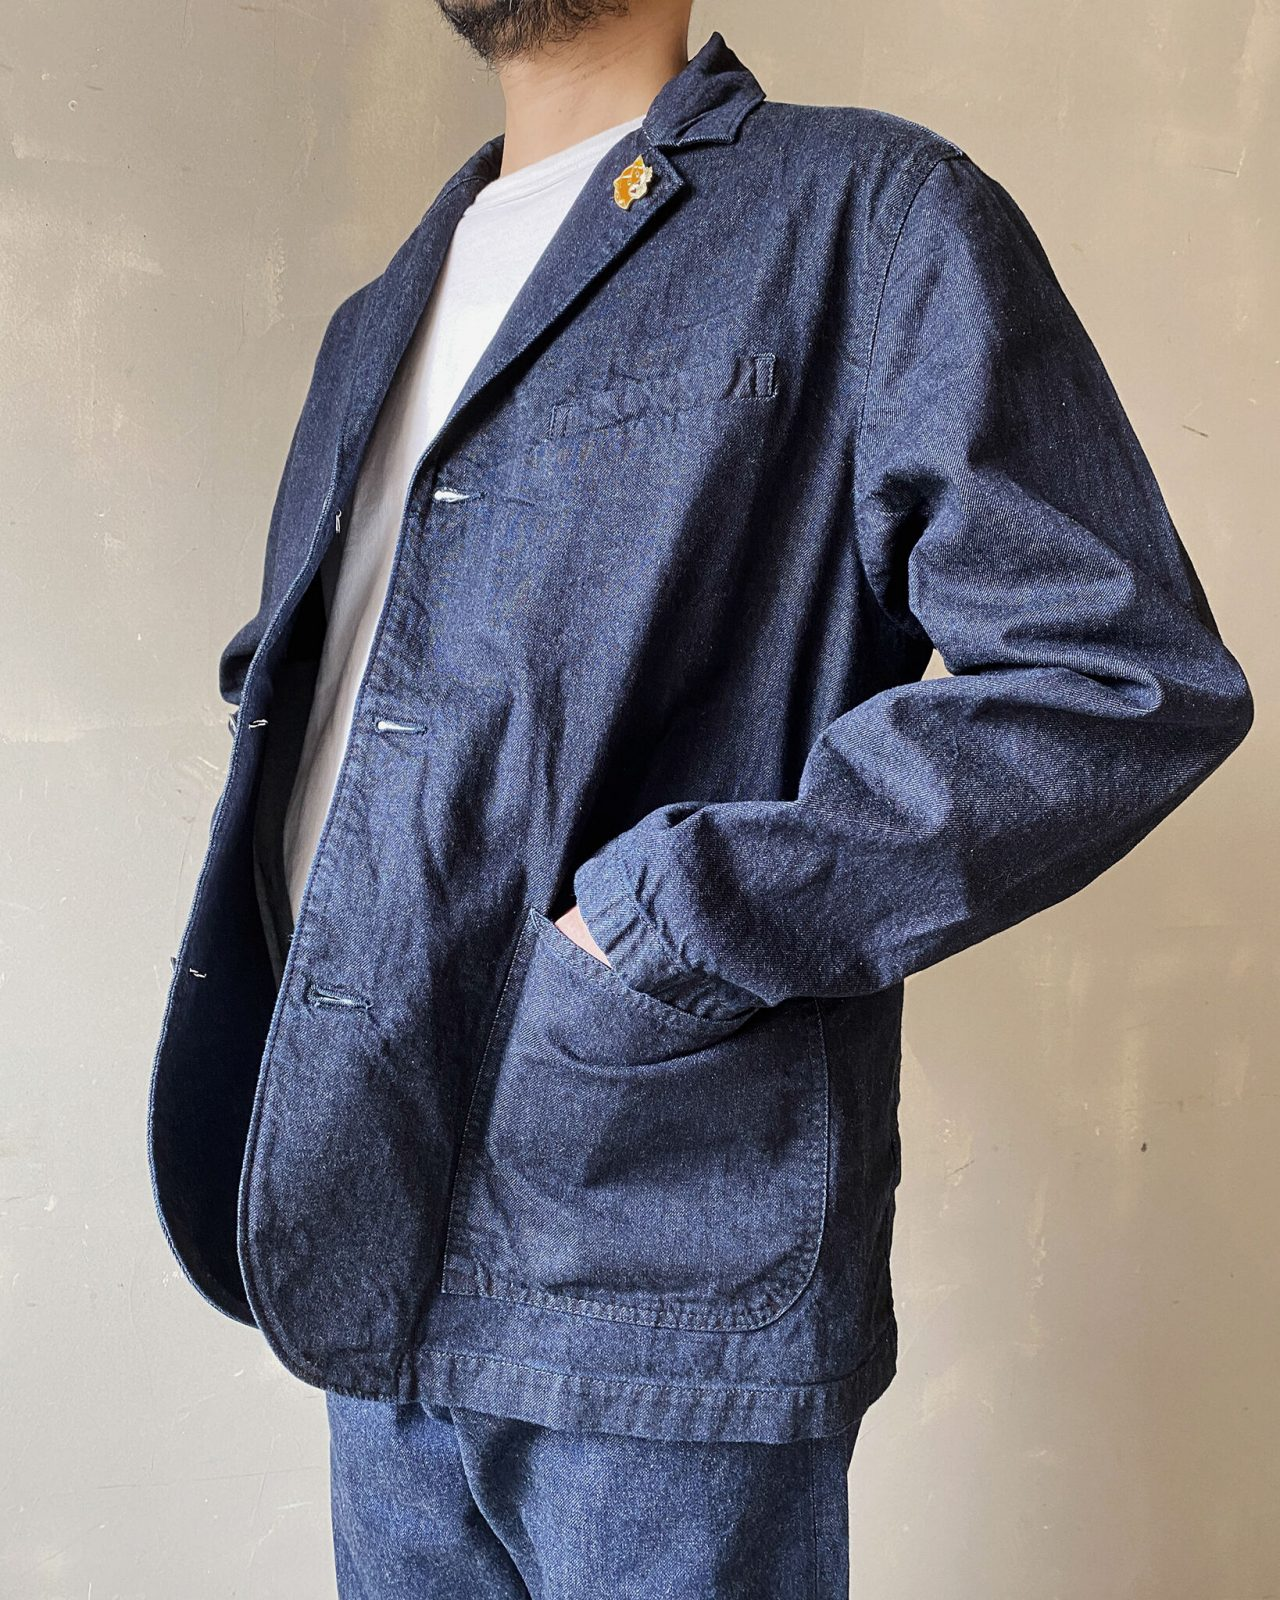 【THE UNION】Blues Jacket【THE BLUEST OVERALL】